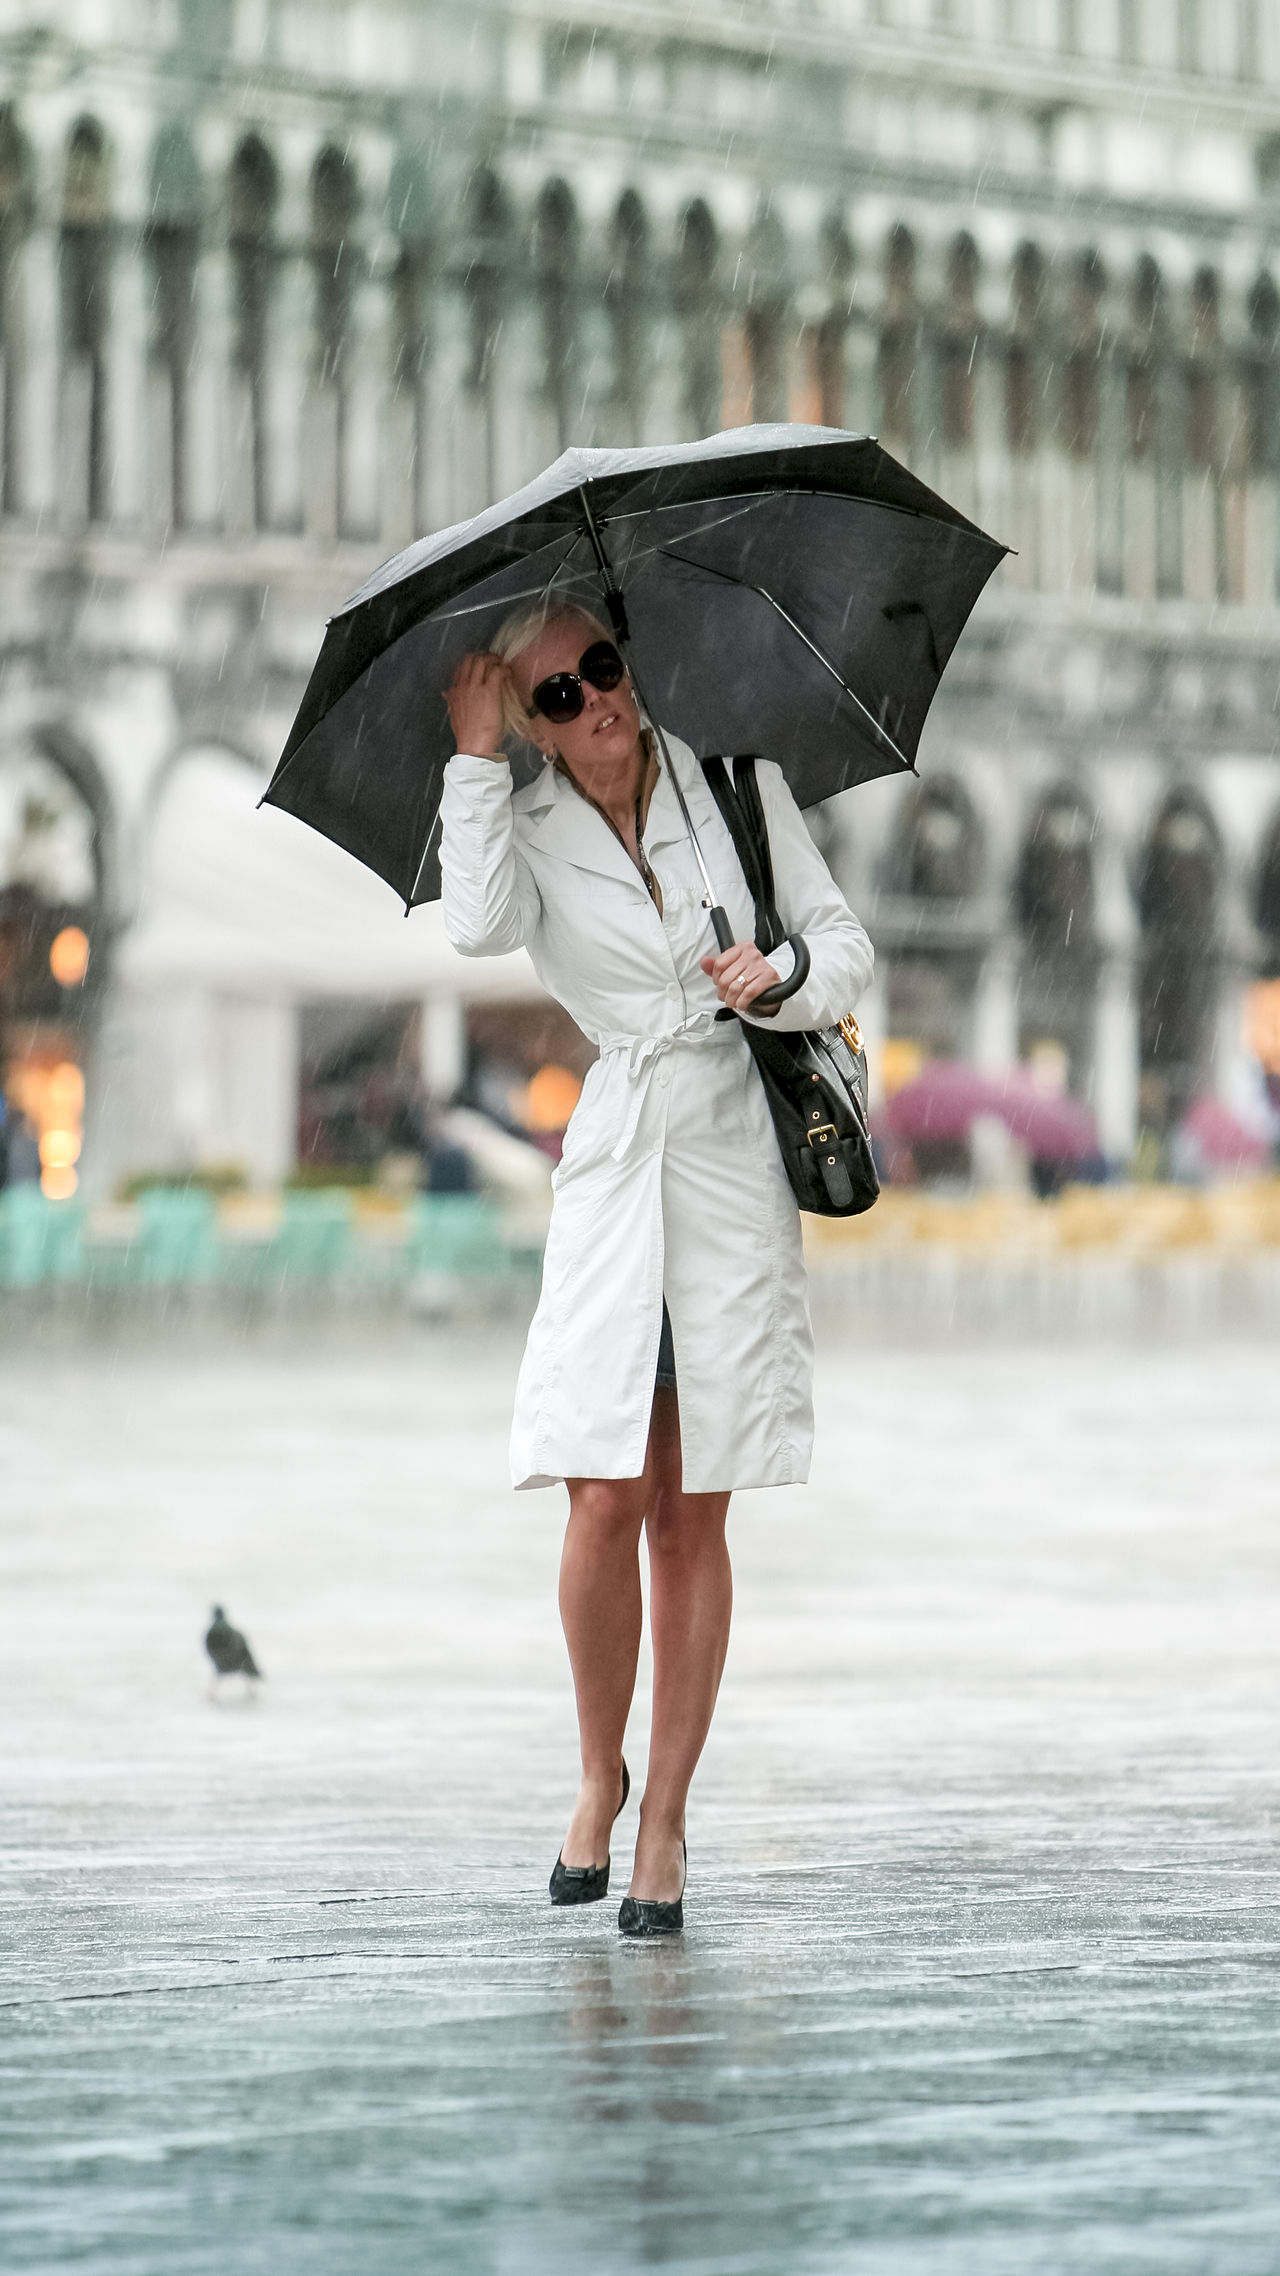 elegant dressed girl walks alone in the peak tourist season the center of St. Mark's Square Venice under the umbrella of rain In The Peak Tourist Season Adult Center Of St. Mark's Square Venice Day Dressed Elegant Girl Walks Alone One Person One Woman Only Outdoors People Person Rain Rain Smiling Umbrella Vertical Water Minimalist Architecture The City Light